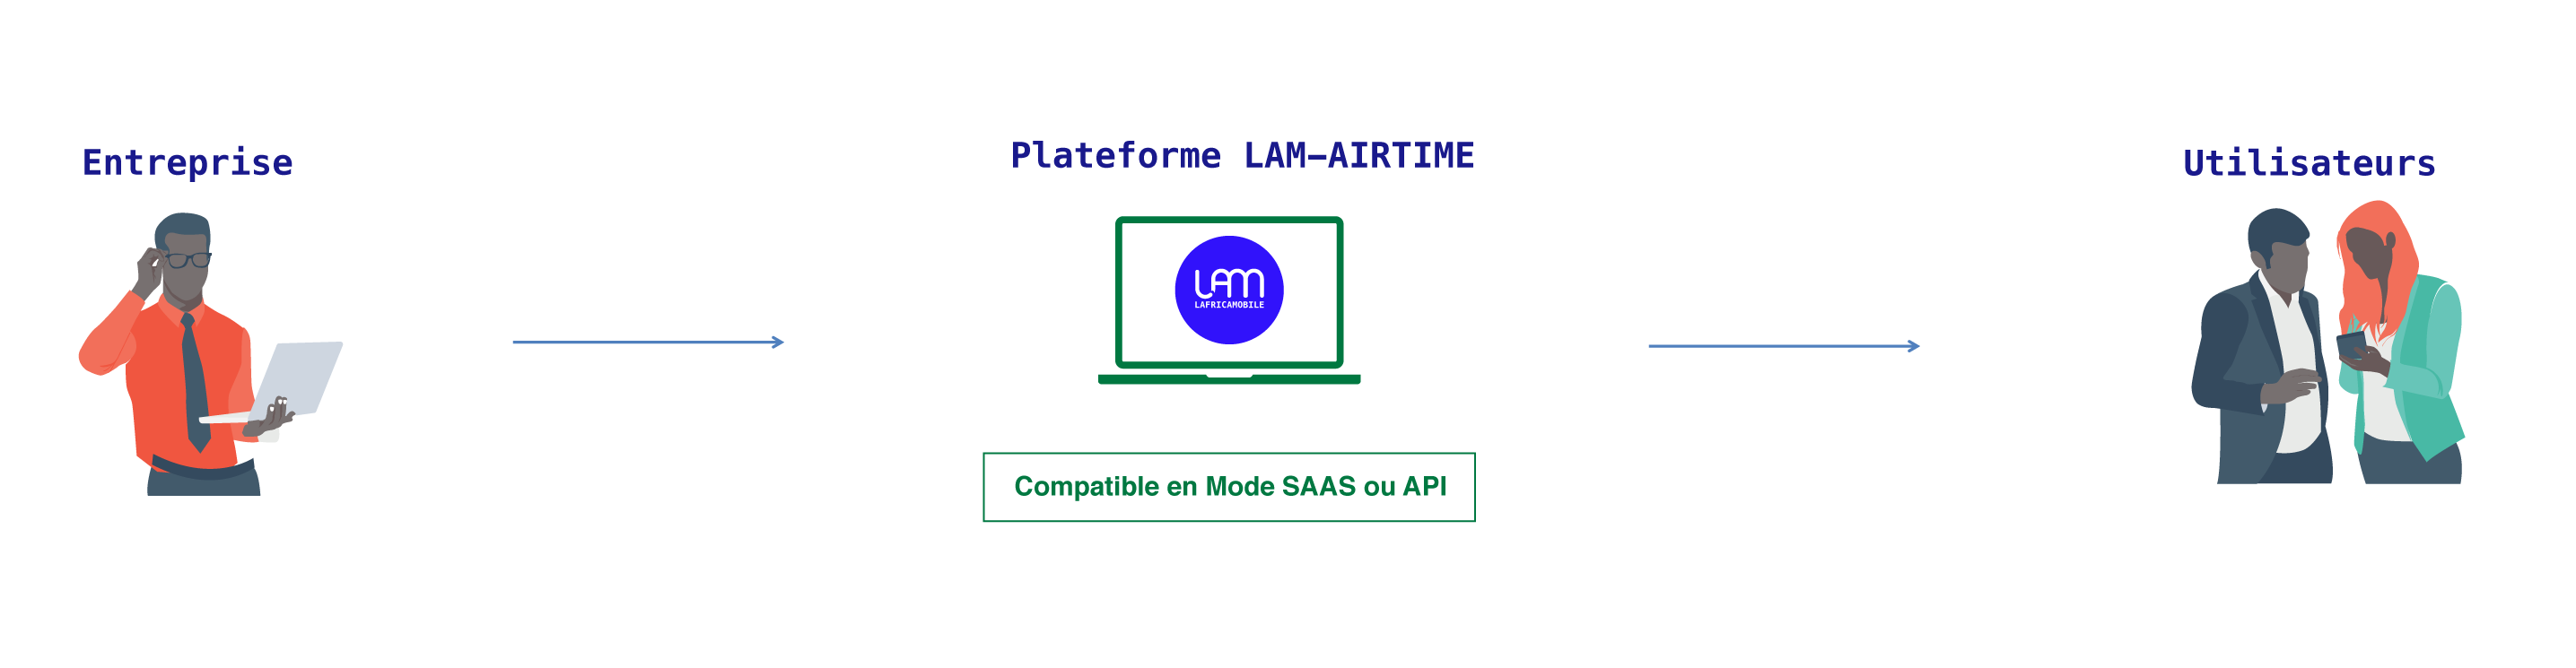 //lafricamobile.com/wp-content/uploads/2021/06/airtime-howto.png